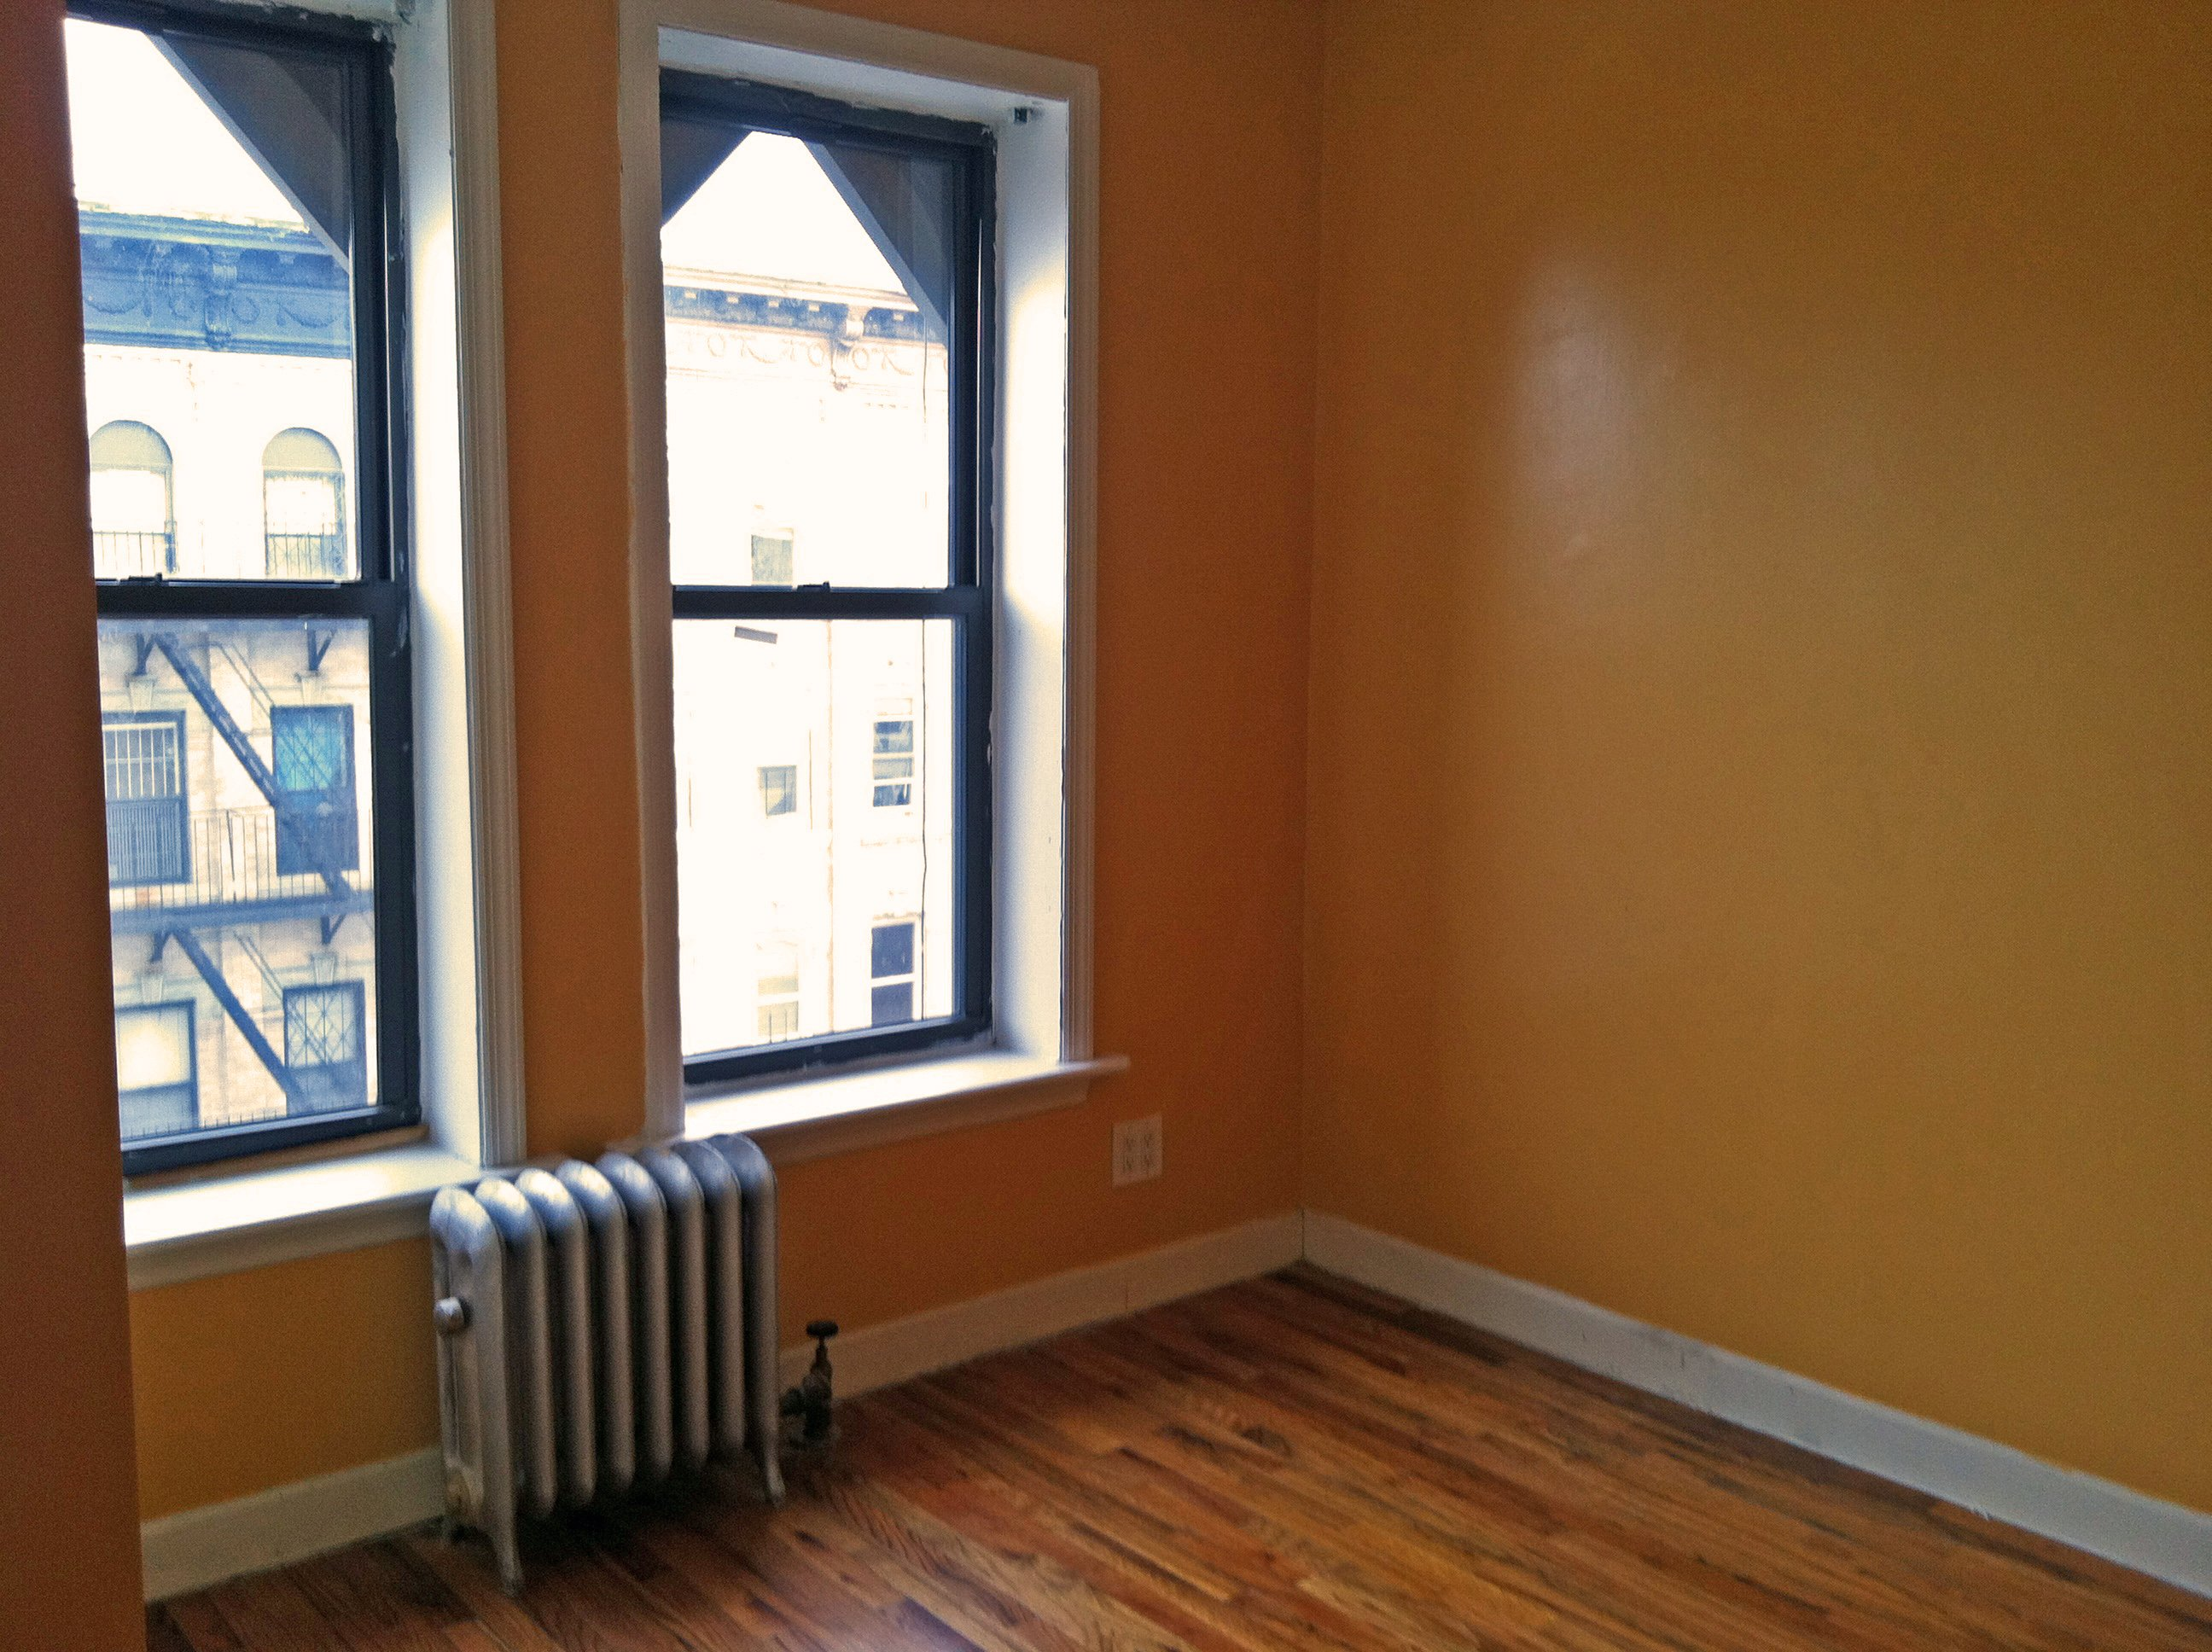 Crown heights 2 bedroom apartment for rent brooklyn crg3120 - Looking for one bedroom apartment for rent ...